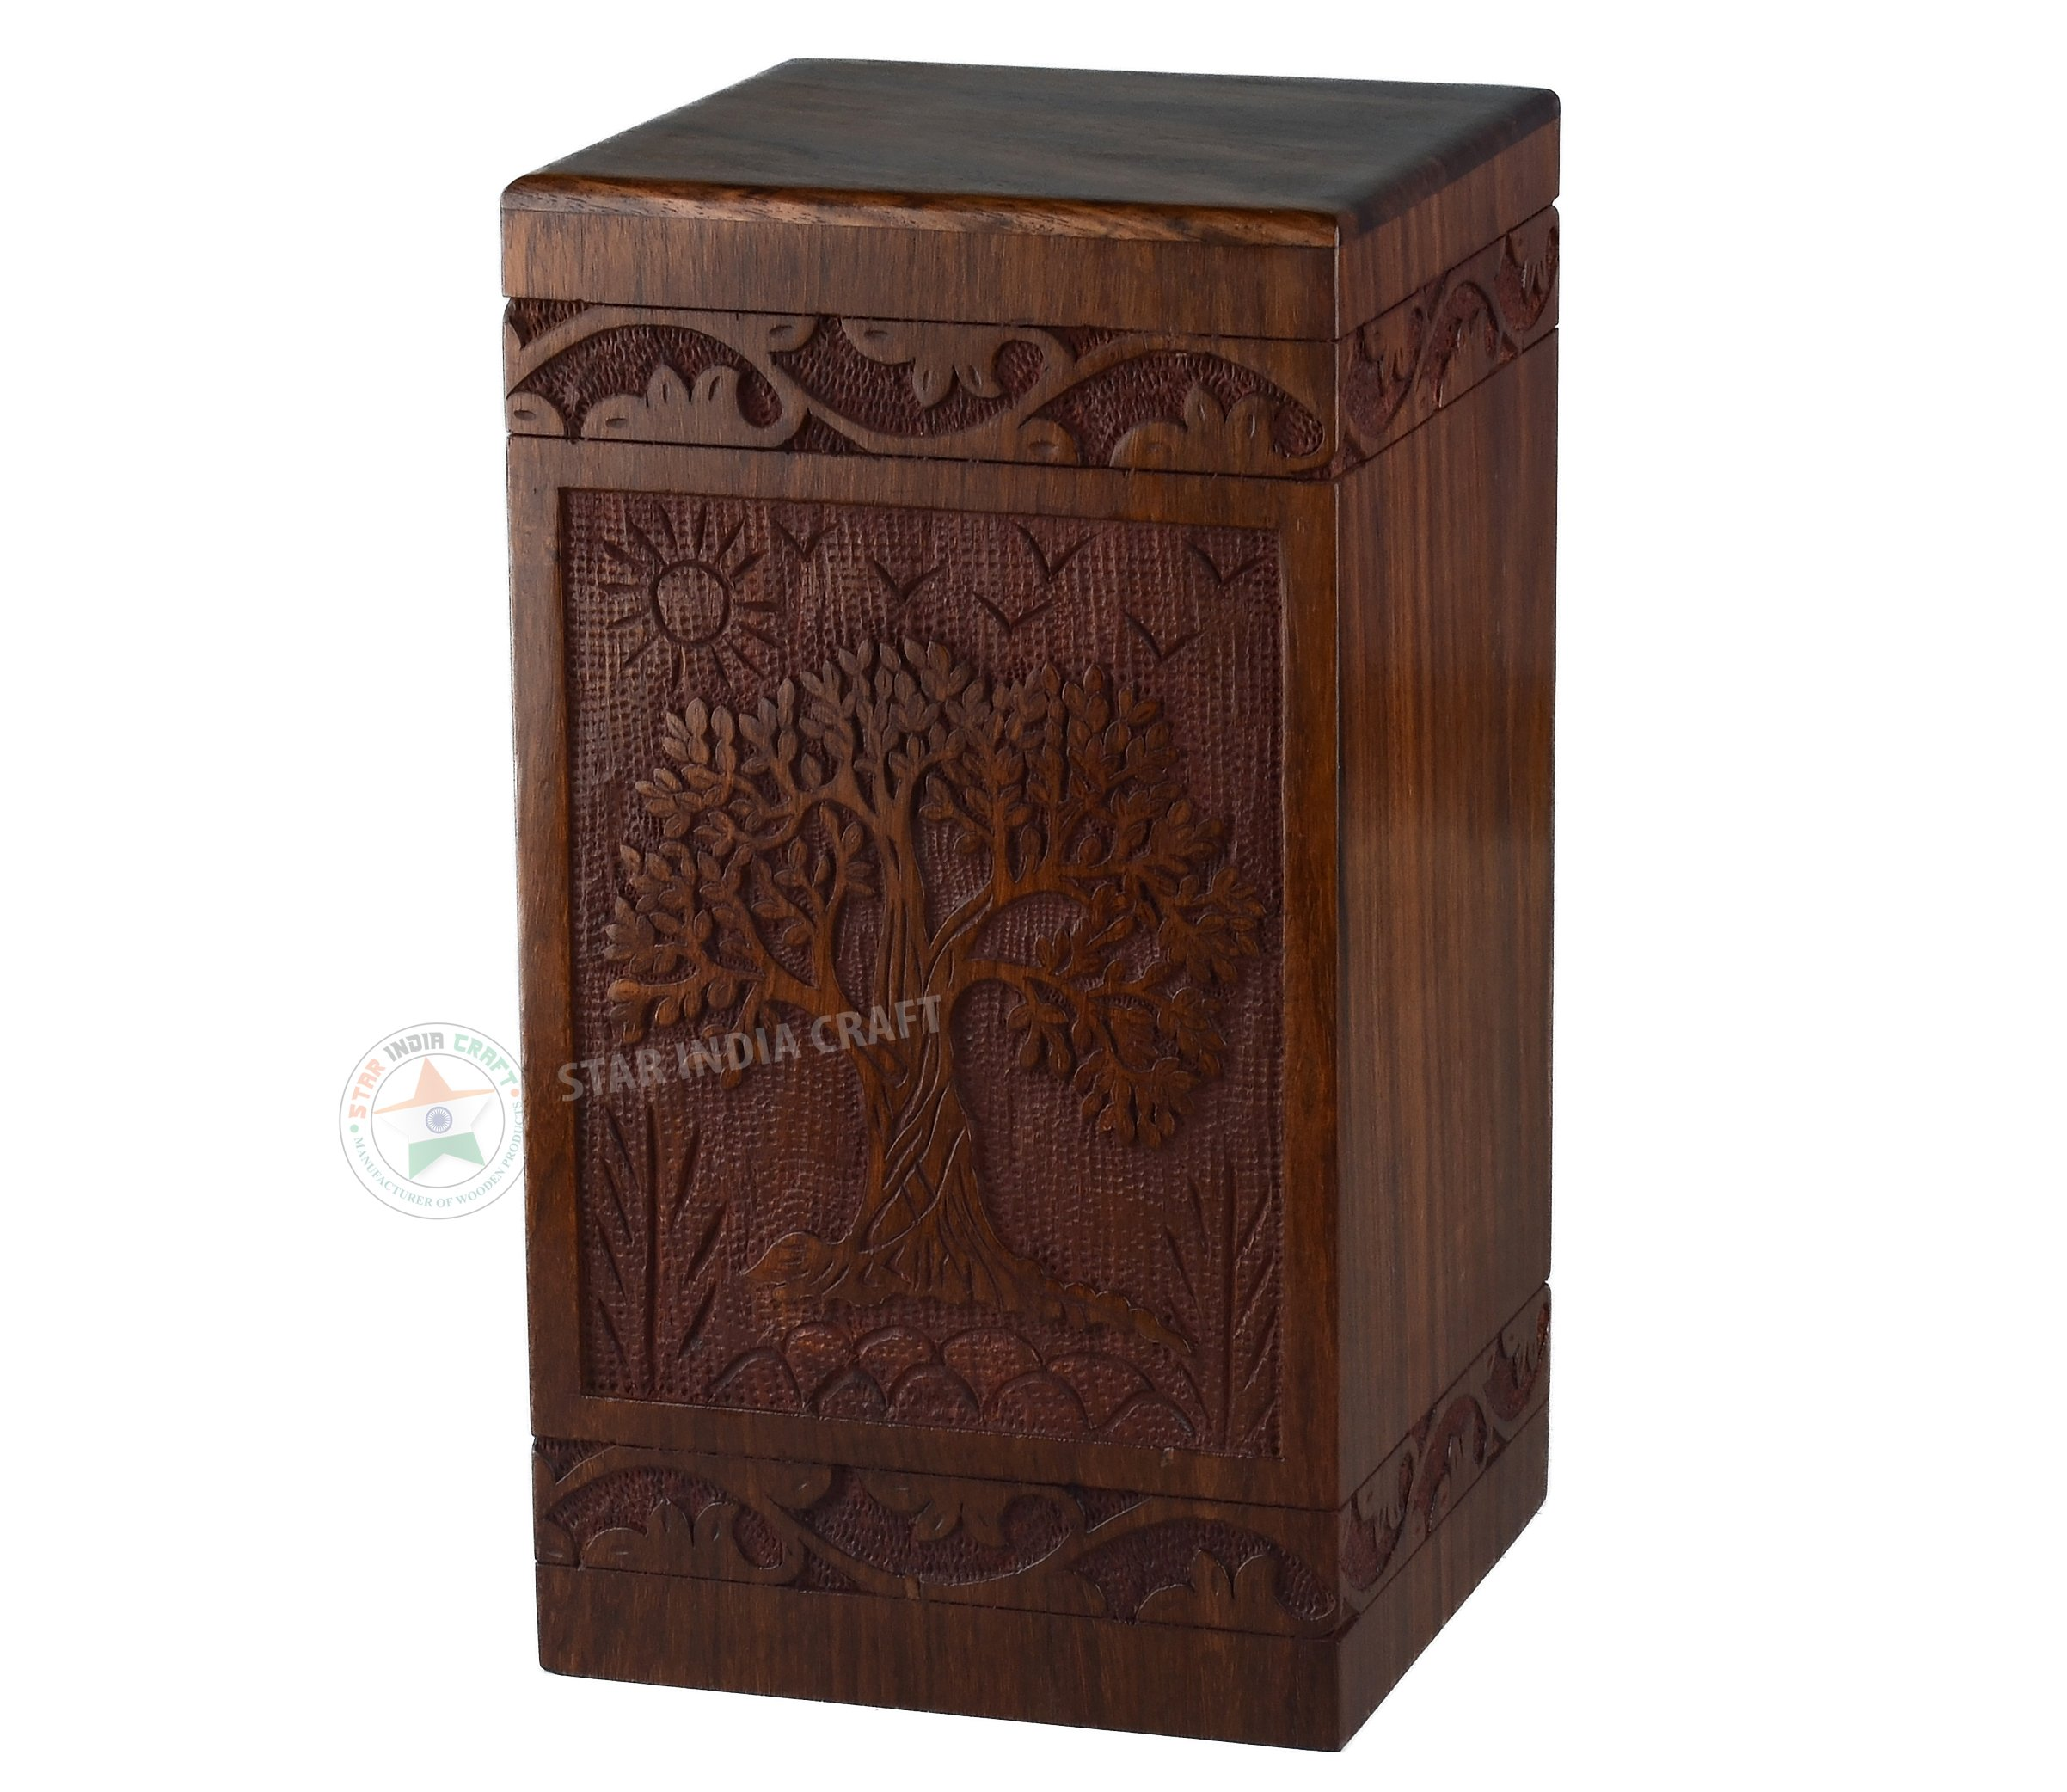 Tree of Life Urns for Human Ashes Adult by STAR INDIA CRAFT - Rosewood Cremation Urns for ashes,Antique Adult Keepsake Urn Wooden Box(11.25 x 6.25 x 6.25'') | 250 Cu/In (Simple Rosewood Round)